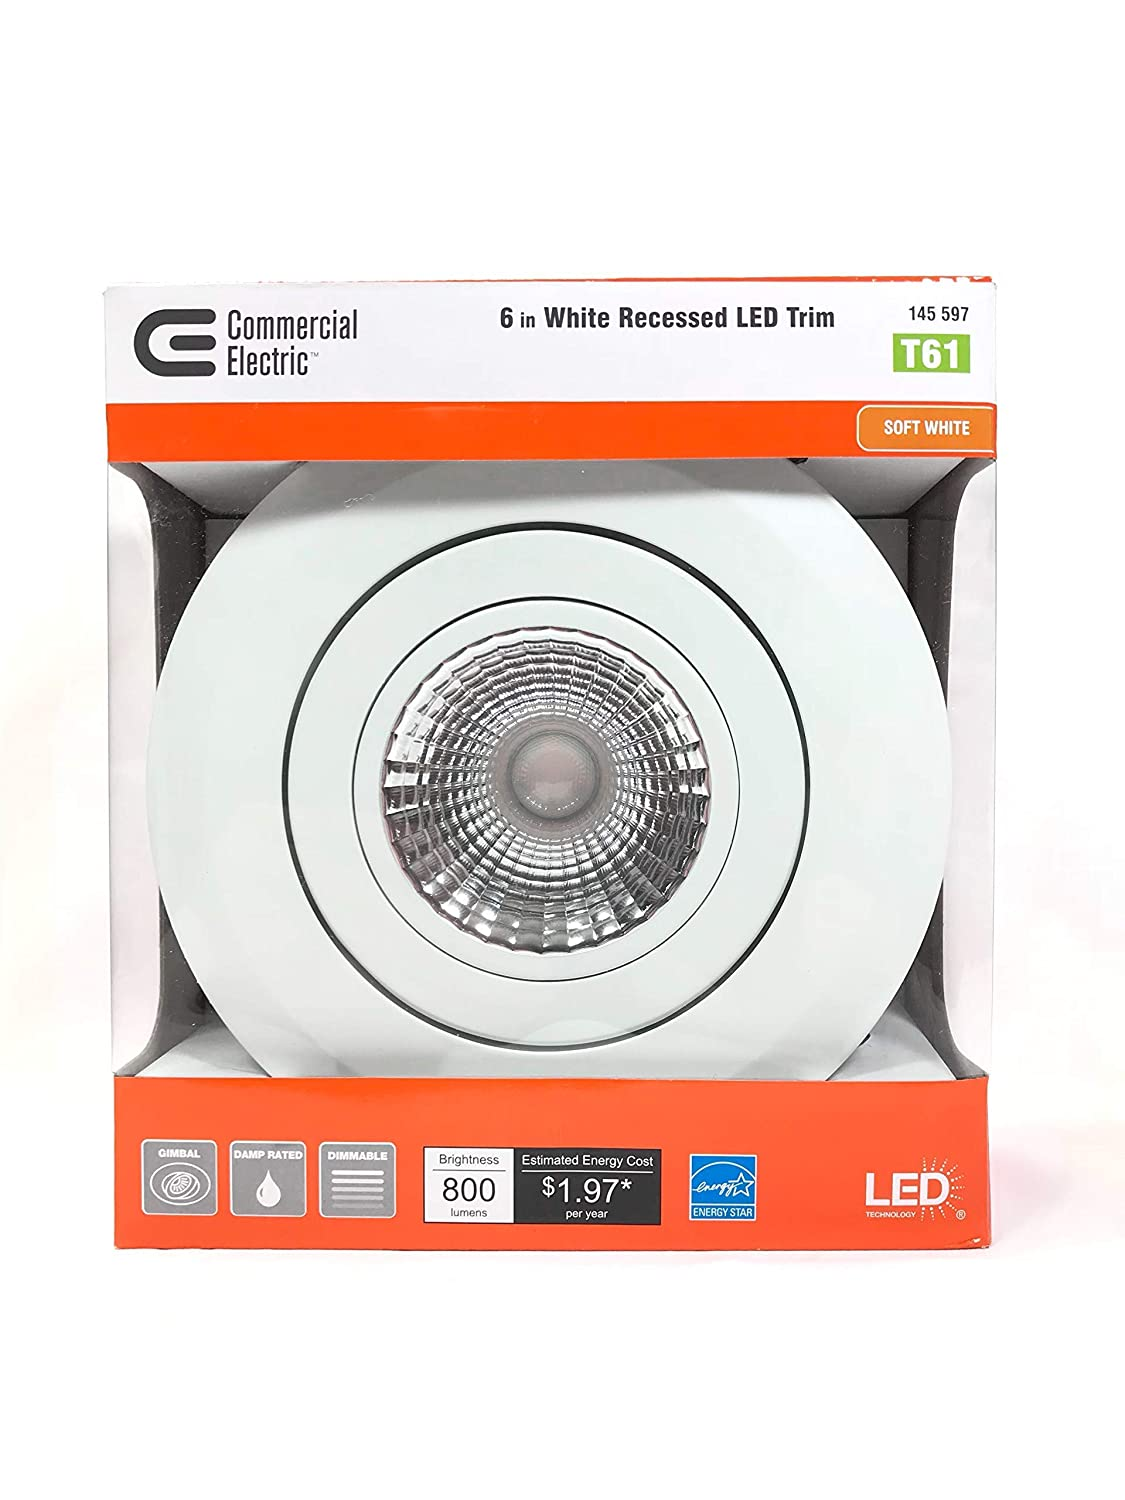 White Integrated LED Recessed Gimbal Trim Commercial Electric 6 in